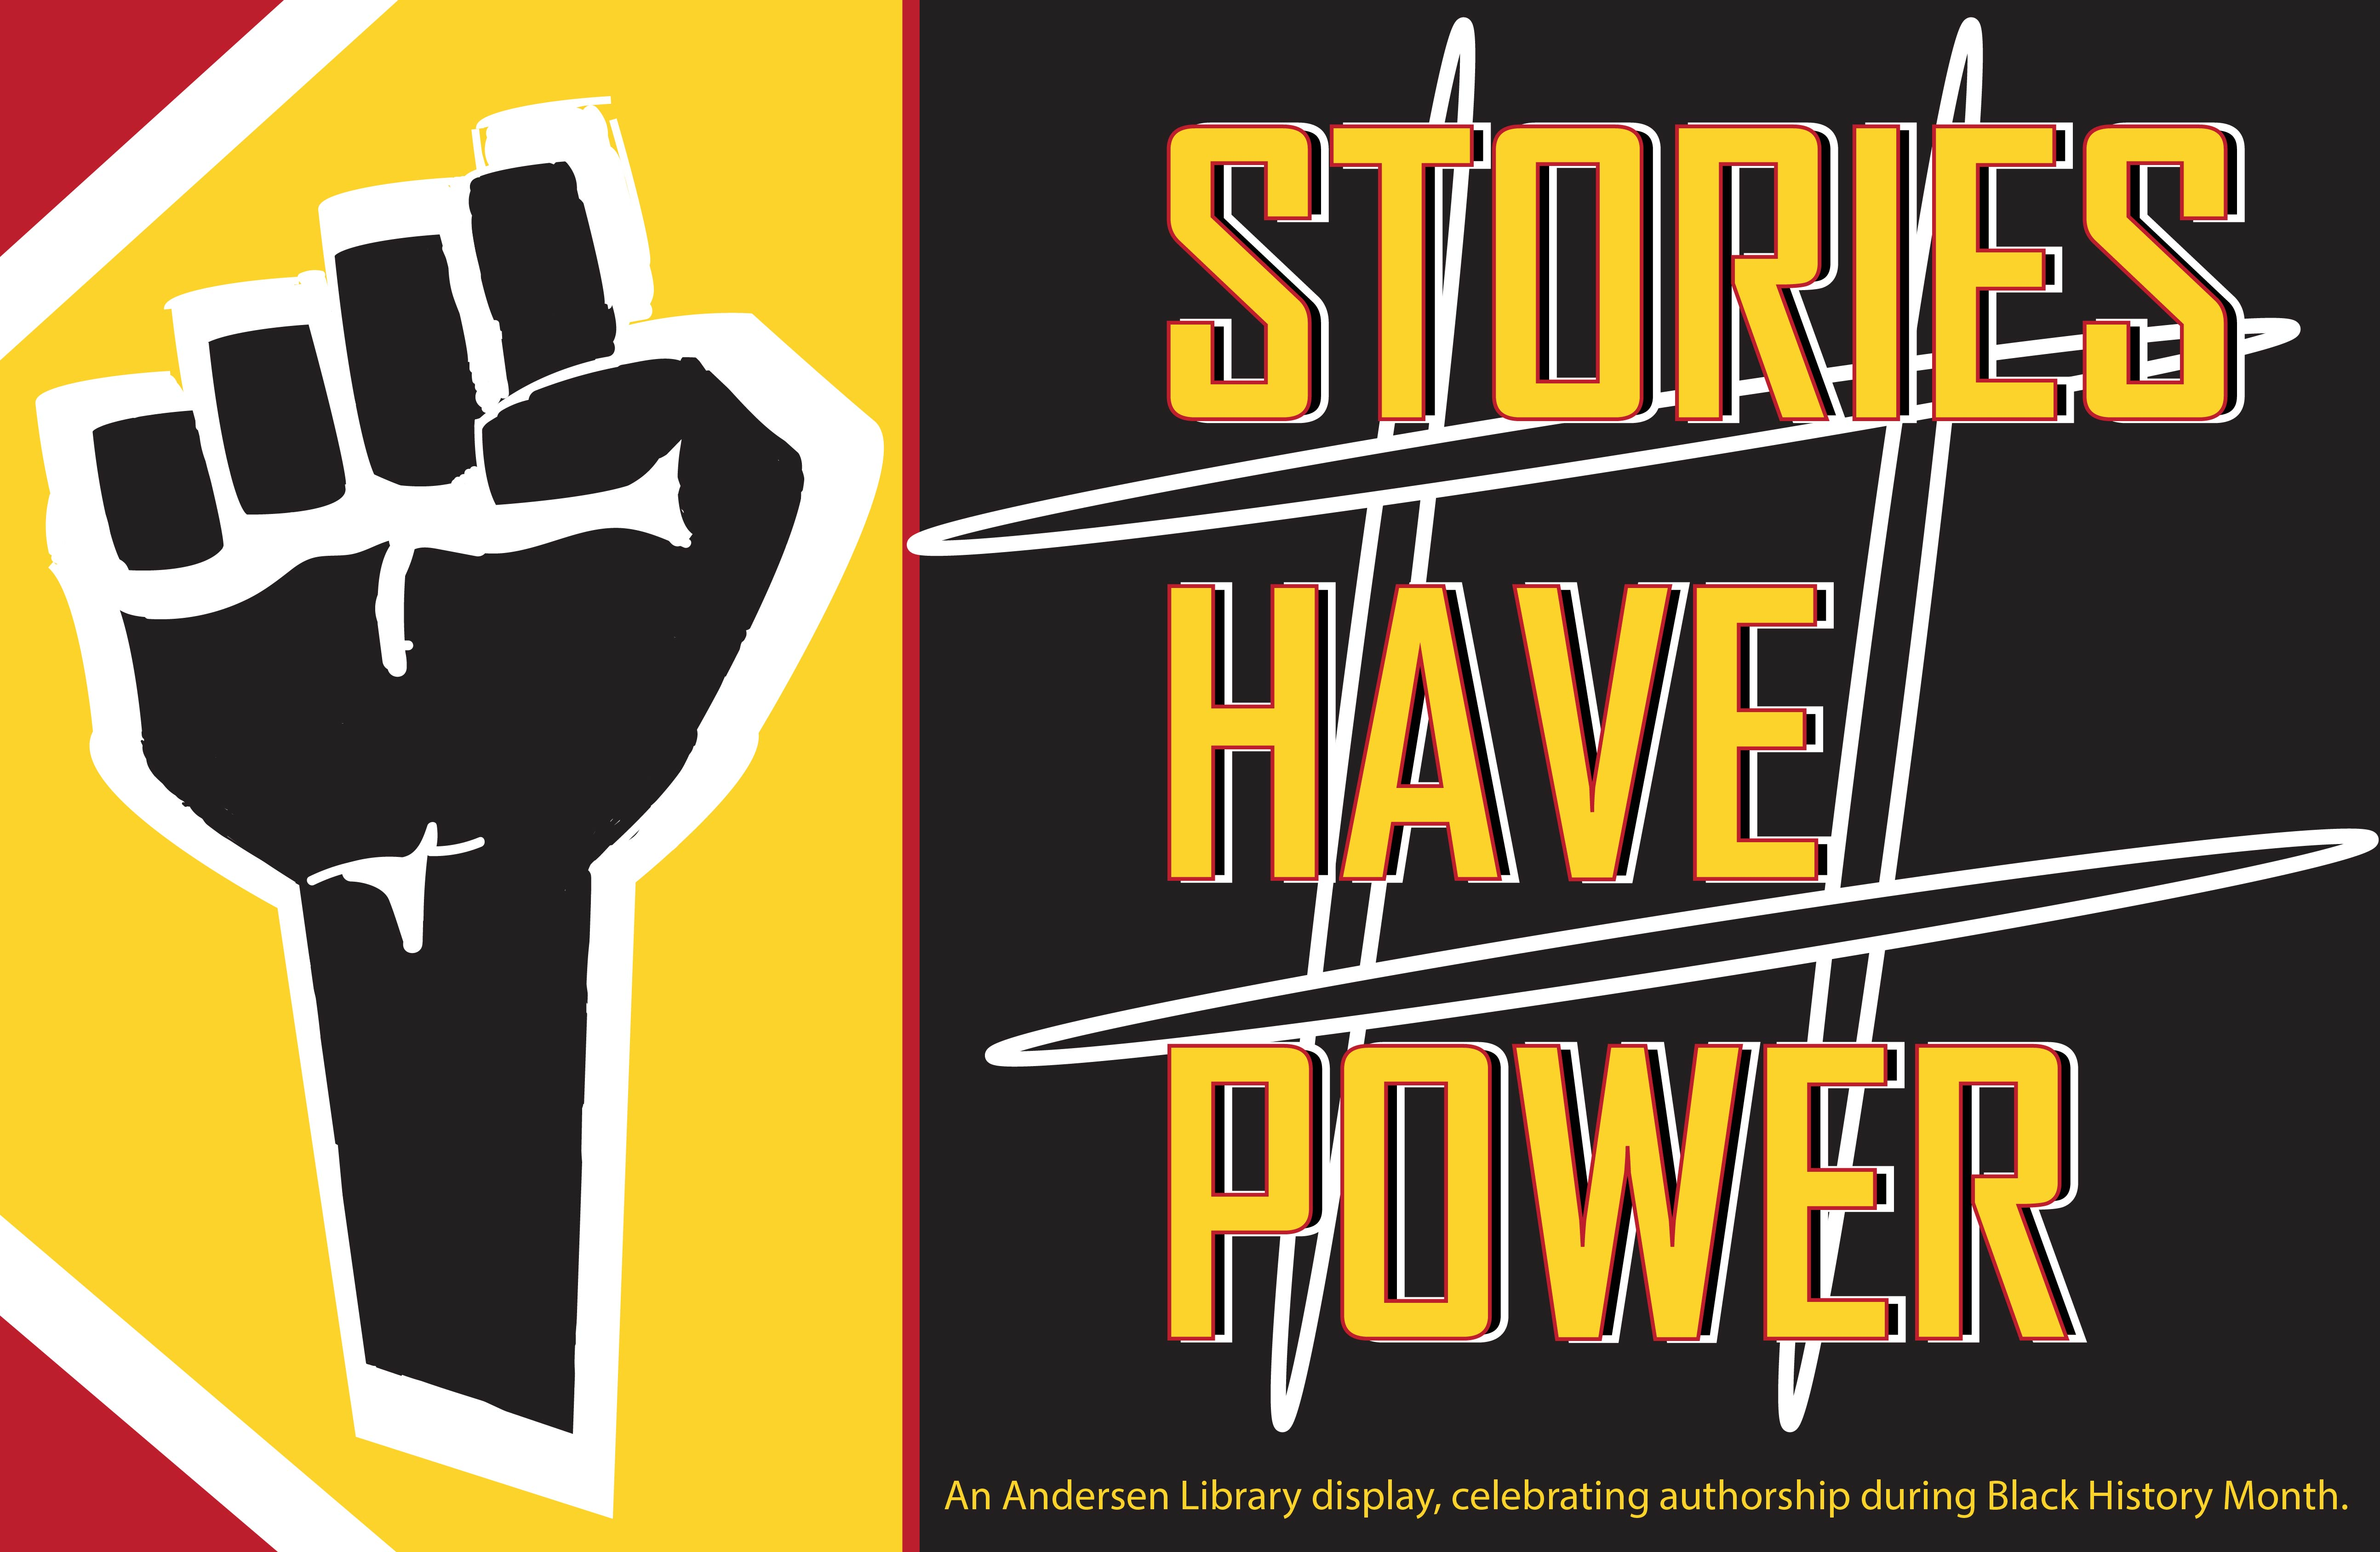 Stories have Power - Power Fist image